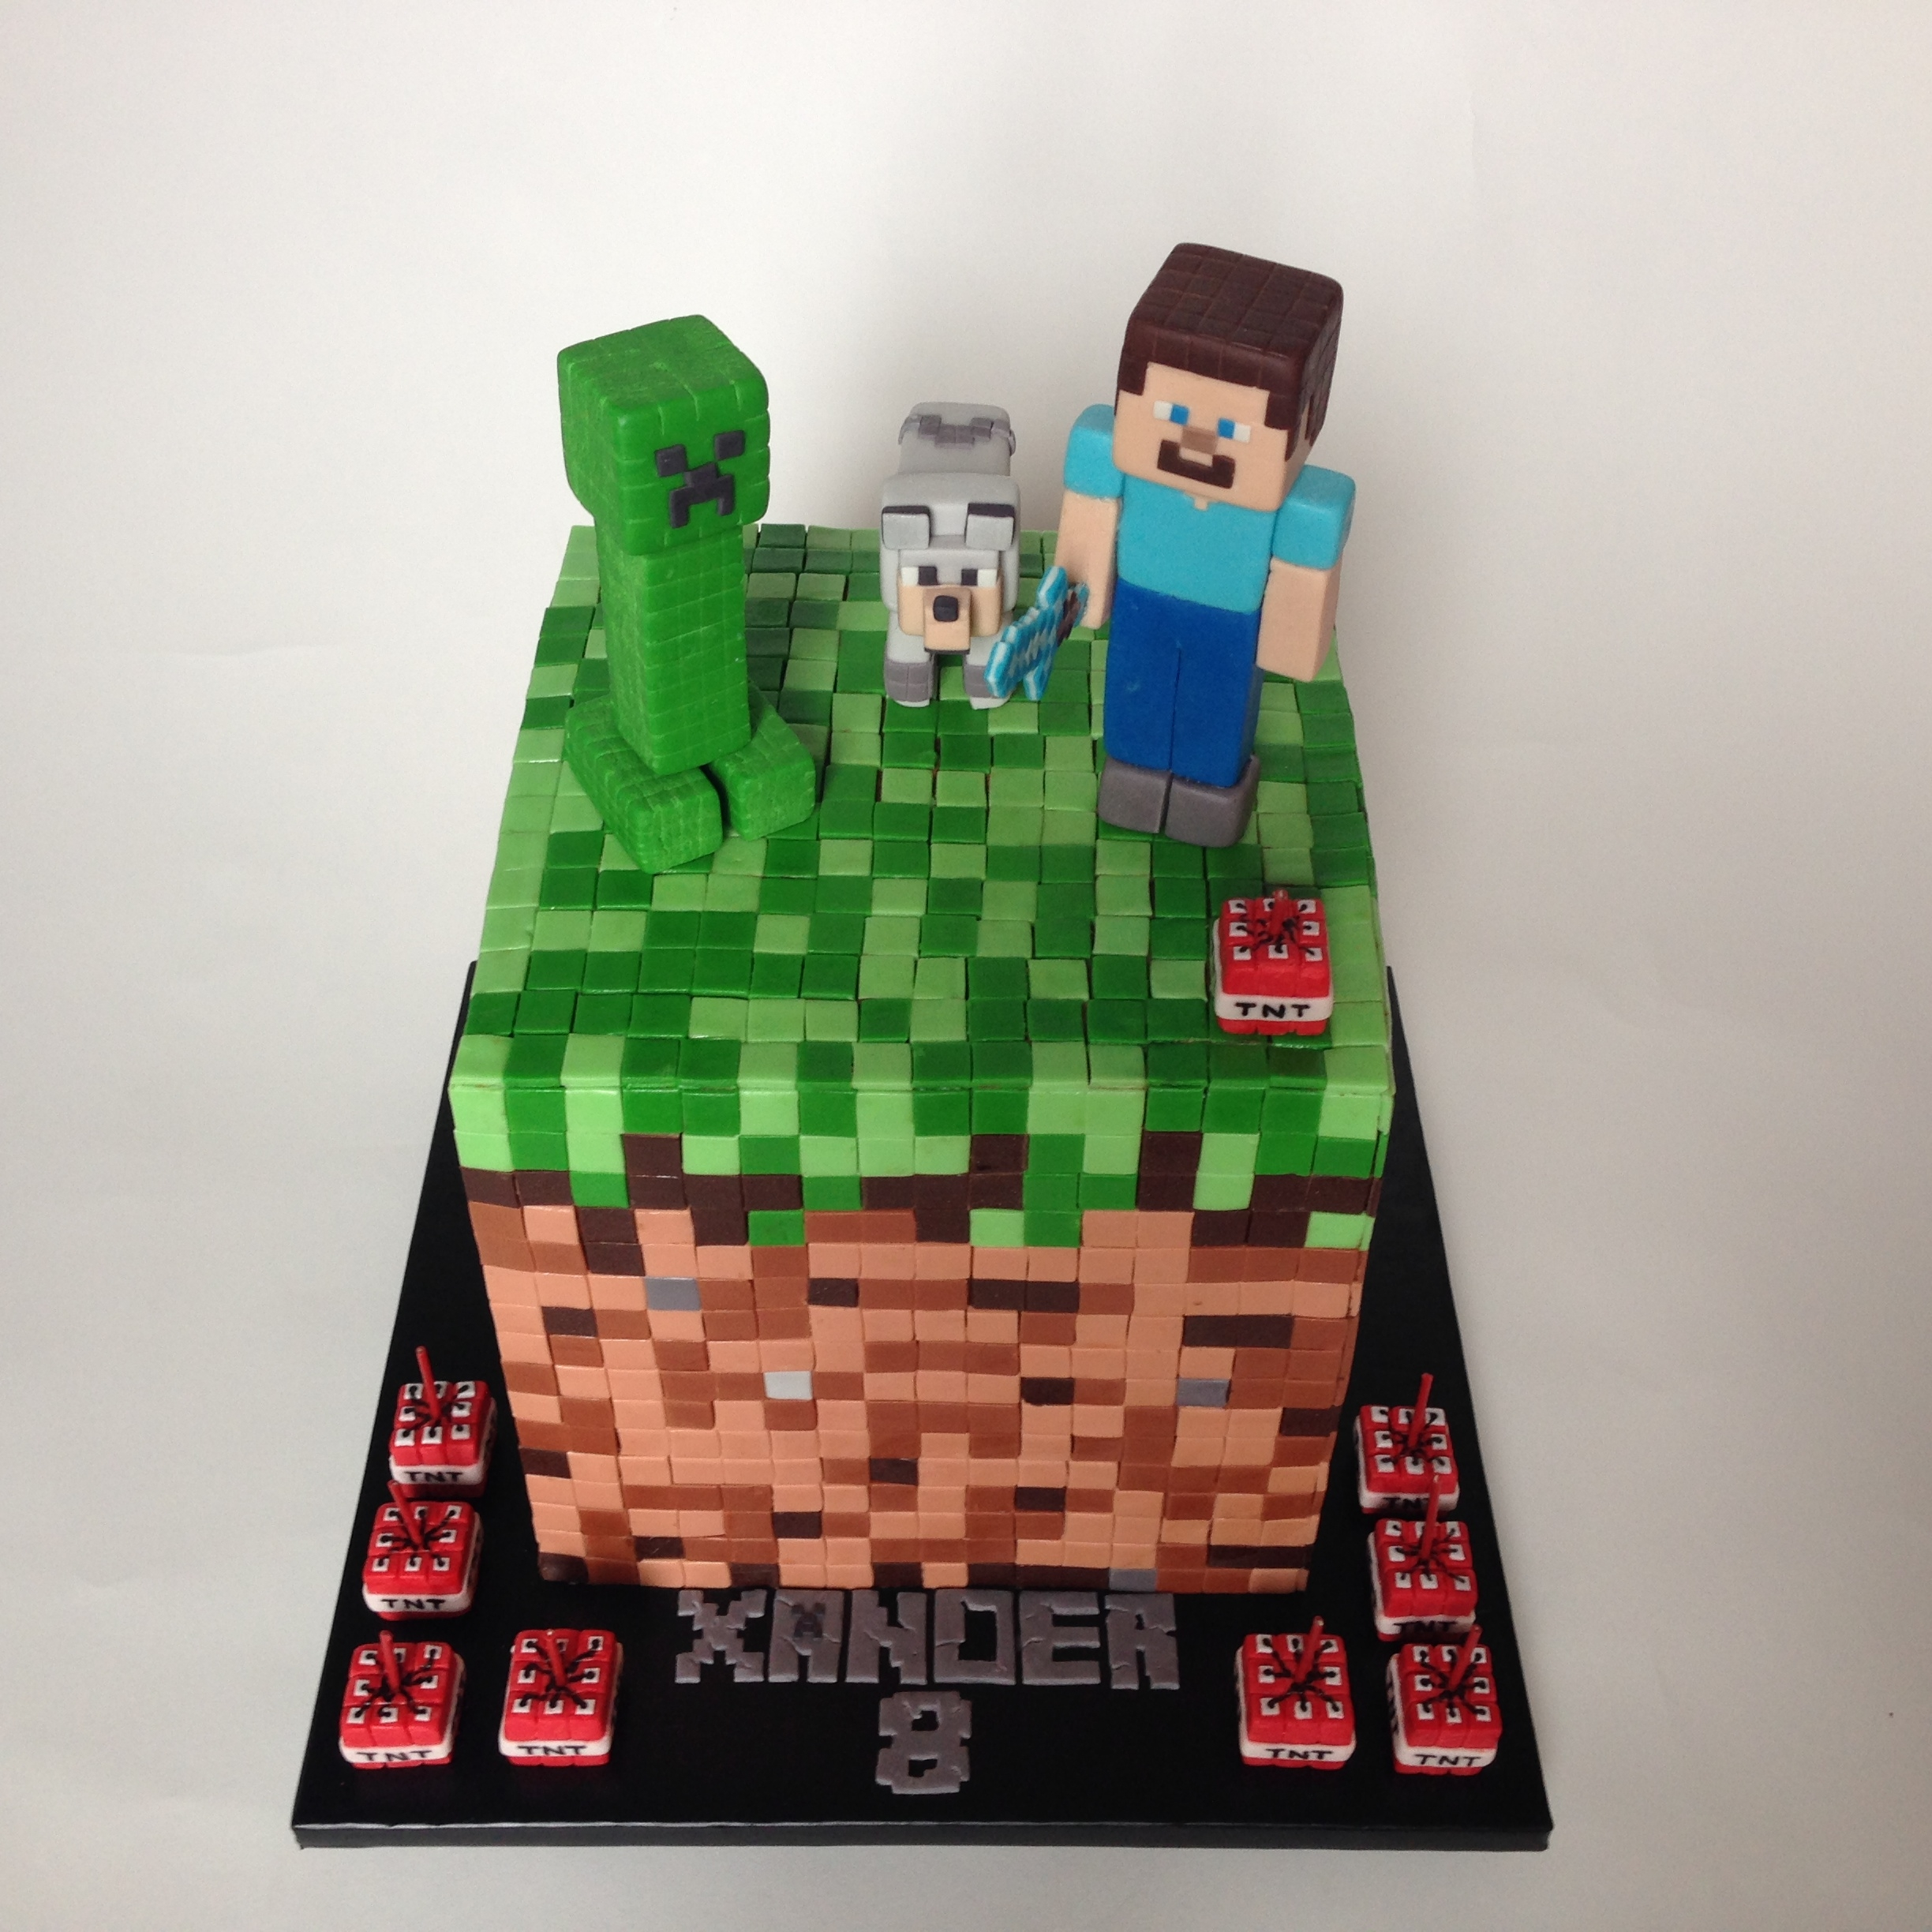 Minecraft Images For Birthday Cake : Minecraft Cake - CakeCentral.com